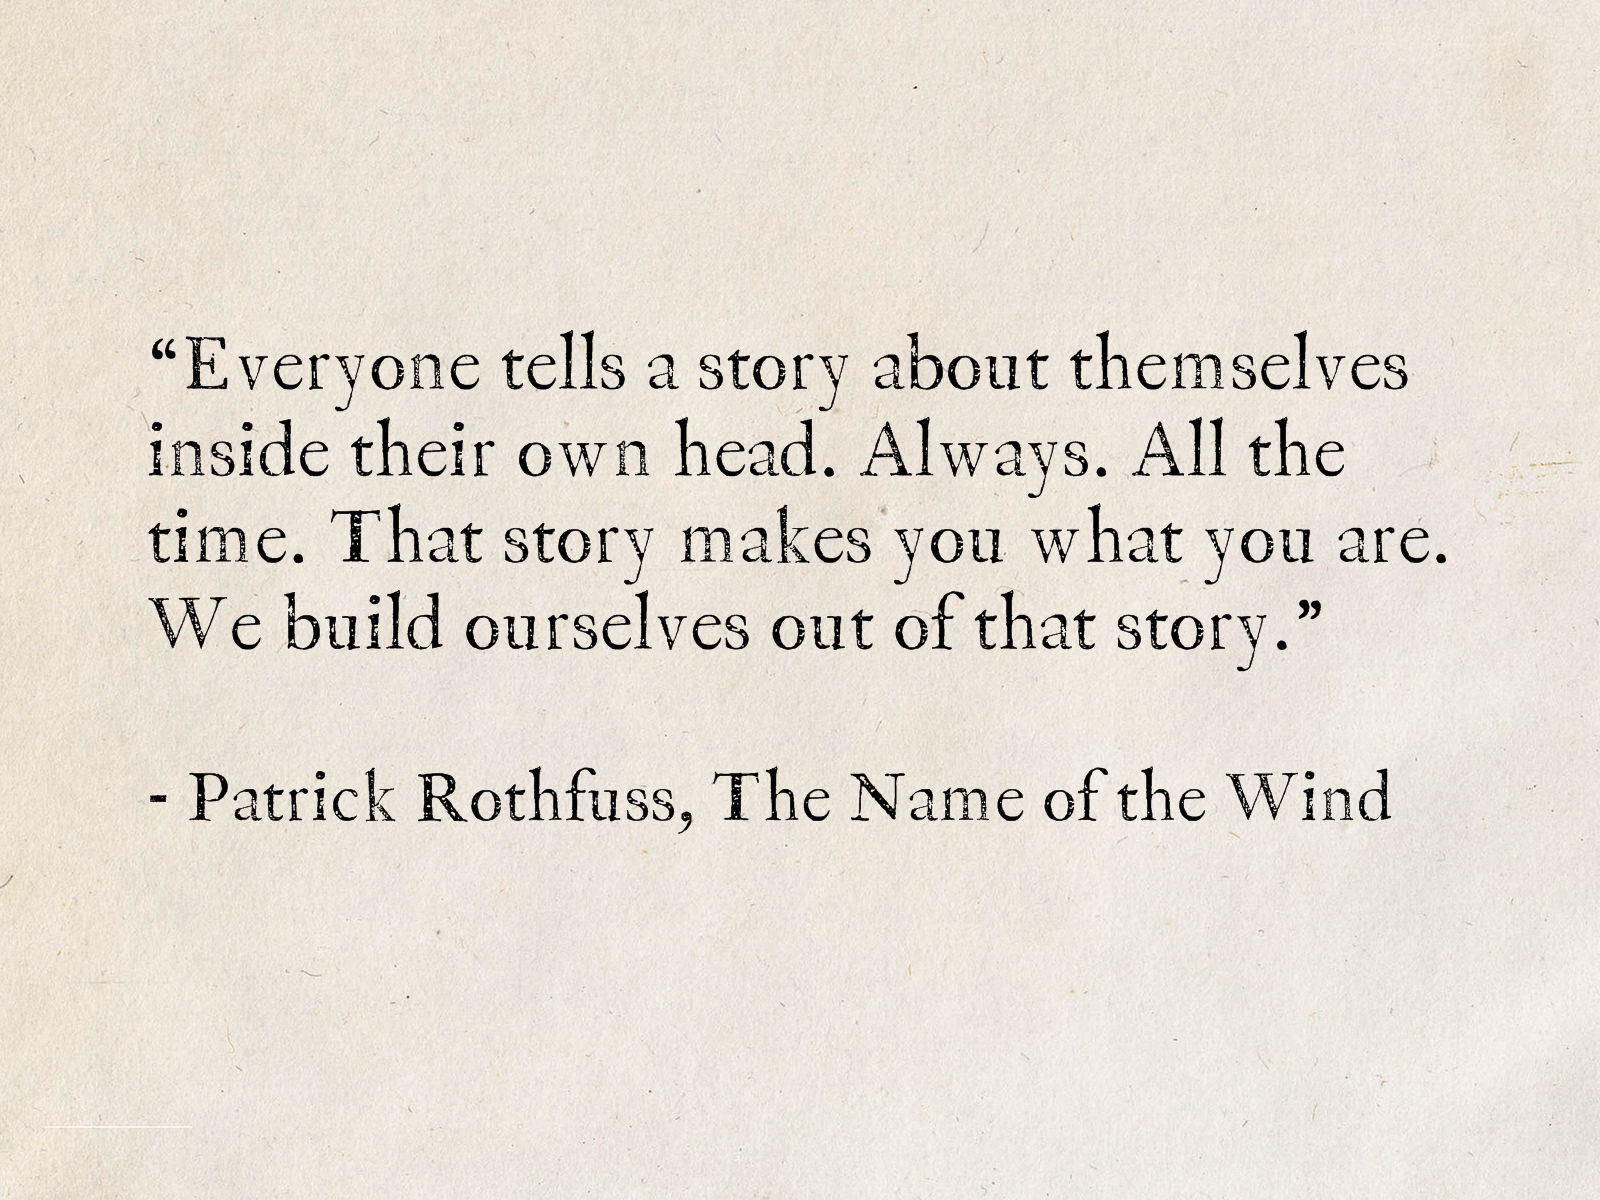 Patrick Rothfuss Quotes on Love, Life and Everything in Between | THE ROCKLE